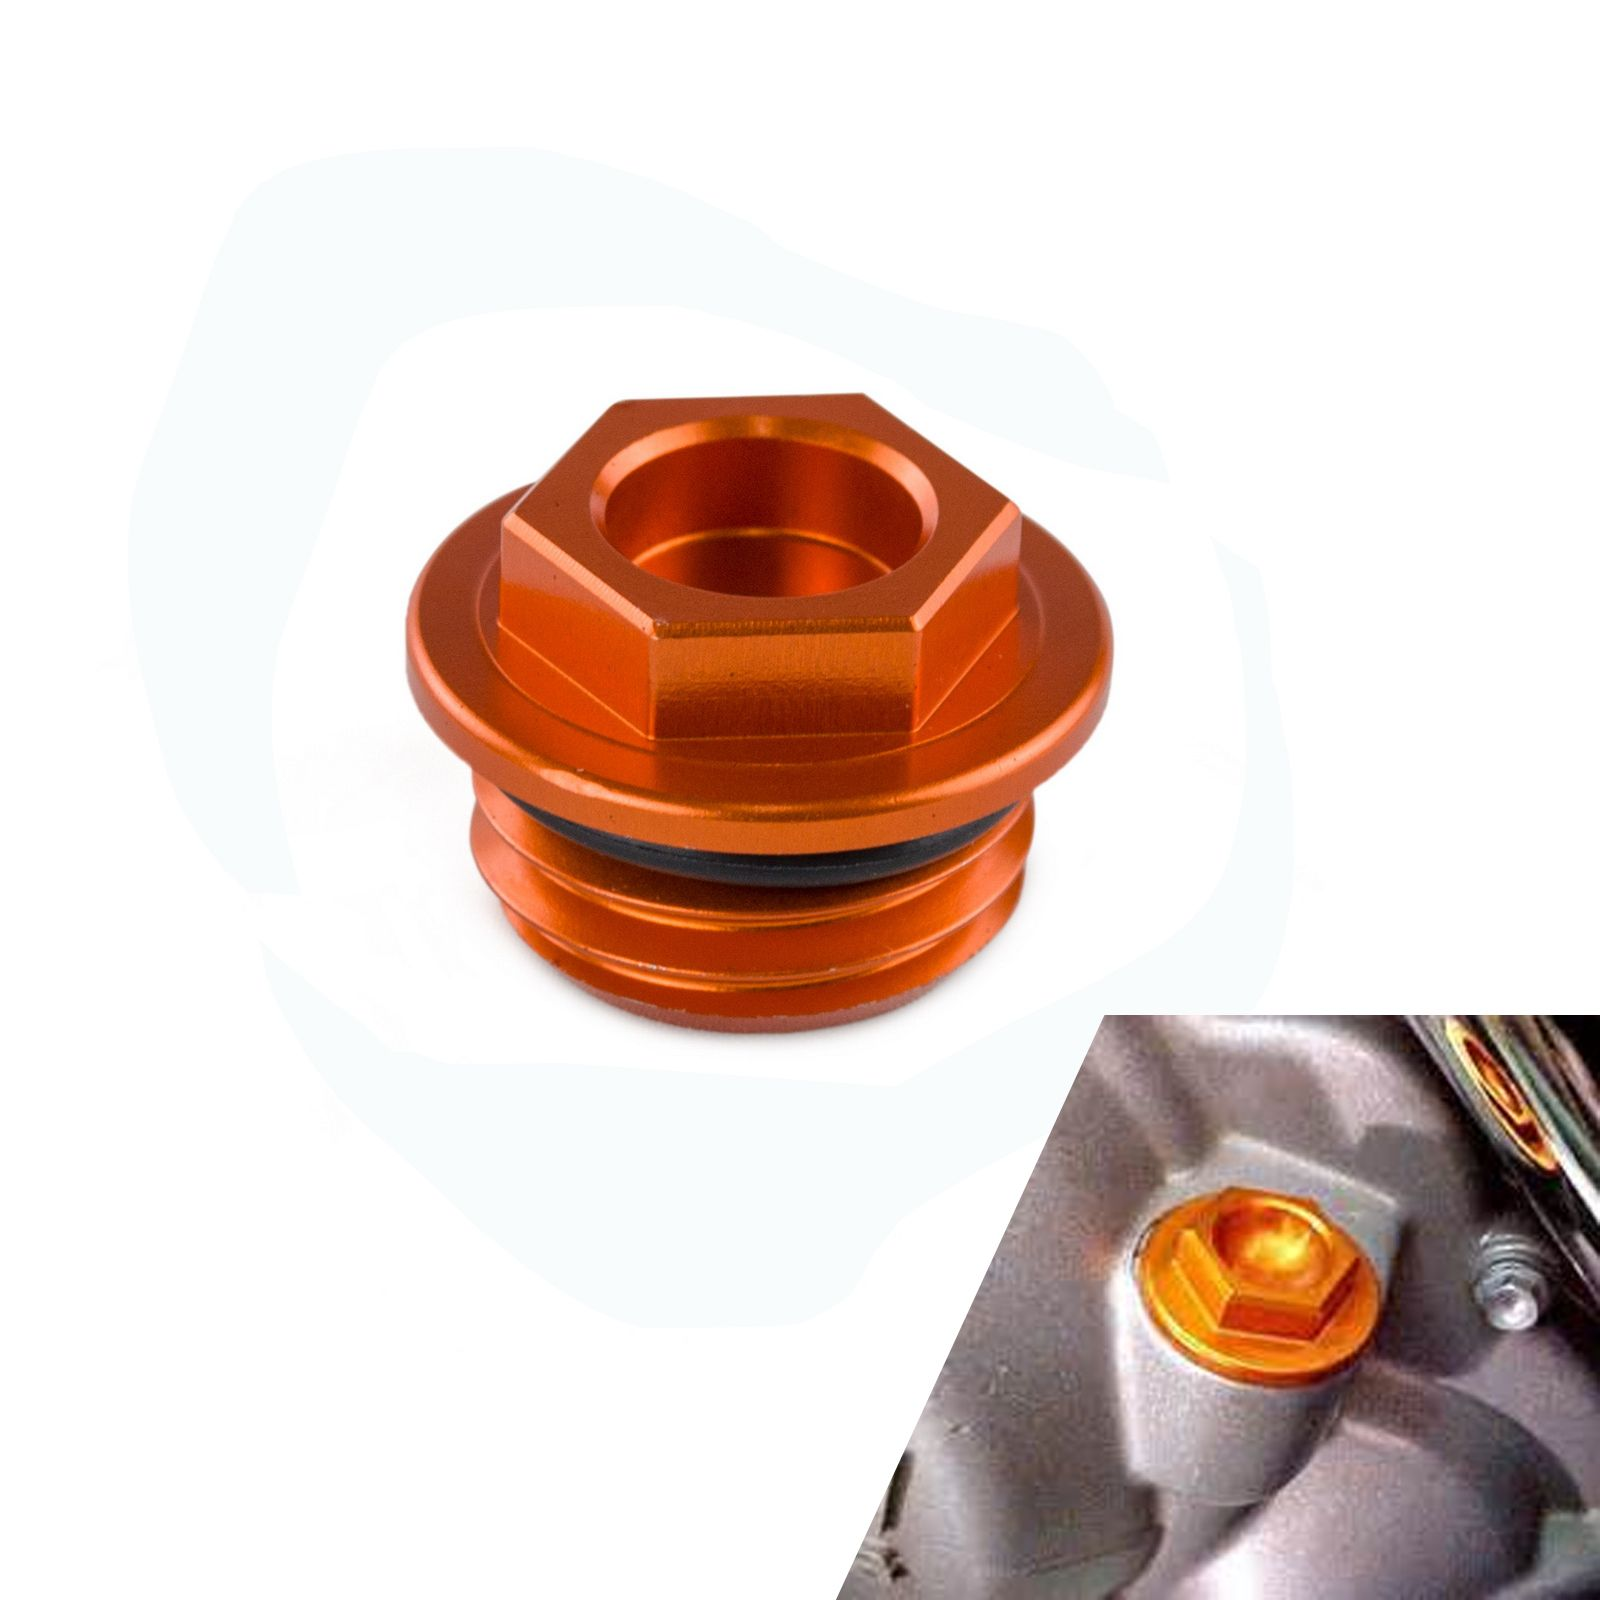 NICECNC Oil Filler Plug Cap For KTM 50 125 200 250 300 350 450 550 620 660 690 1290 SX SXF XC XCF EXC Supermoto LC4 SMC Duke